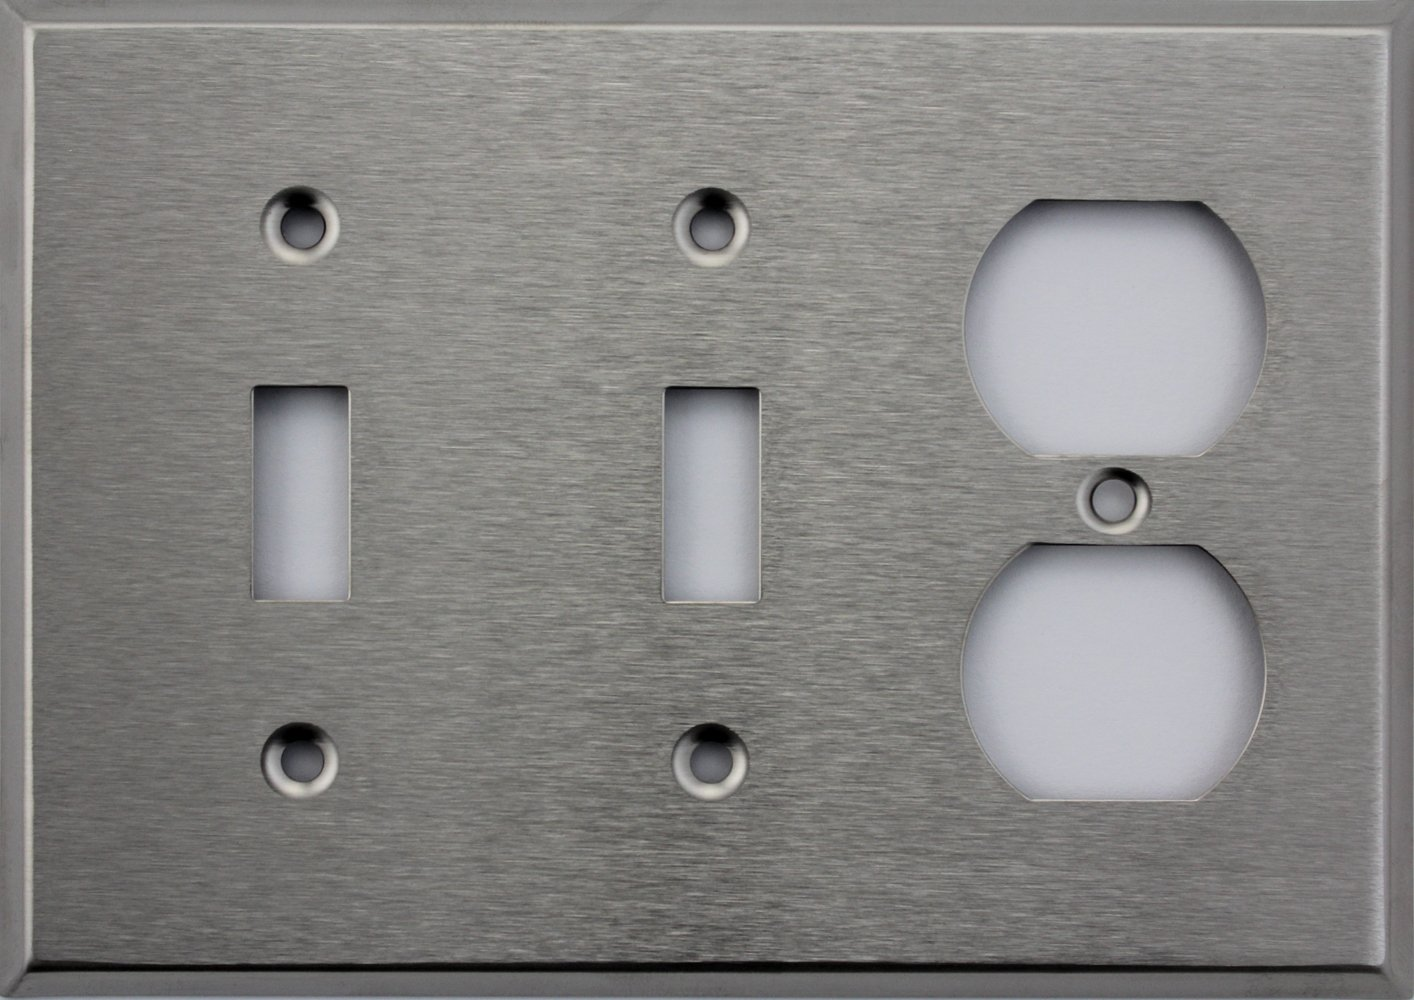 Brushed Satin Stainless Steel Three Gang Wall Plate Two Toggle ...